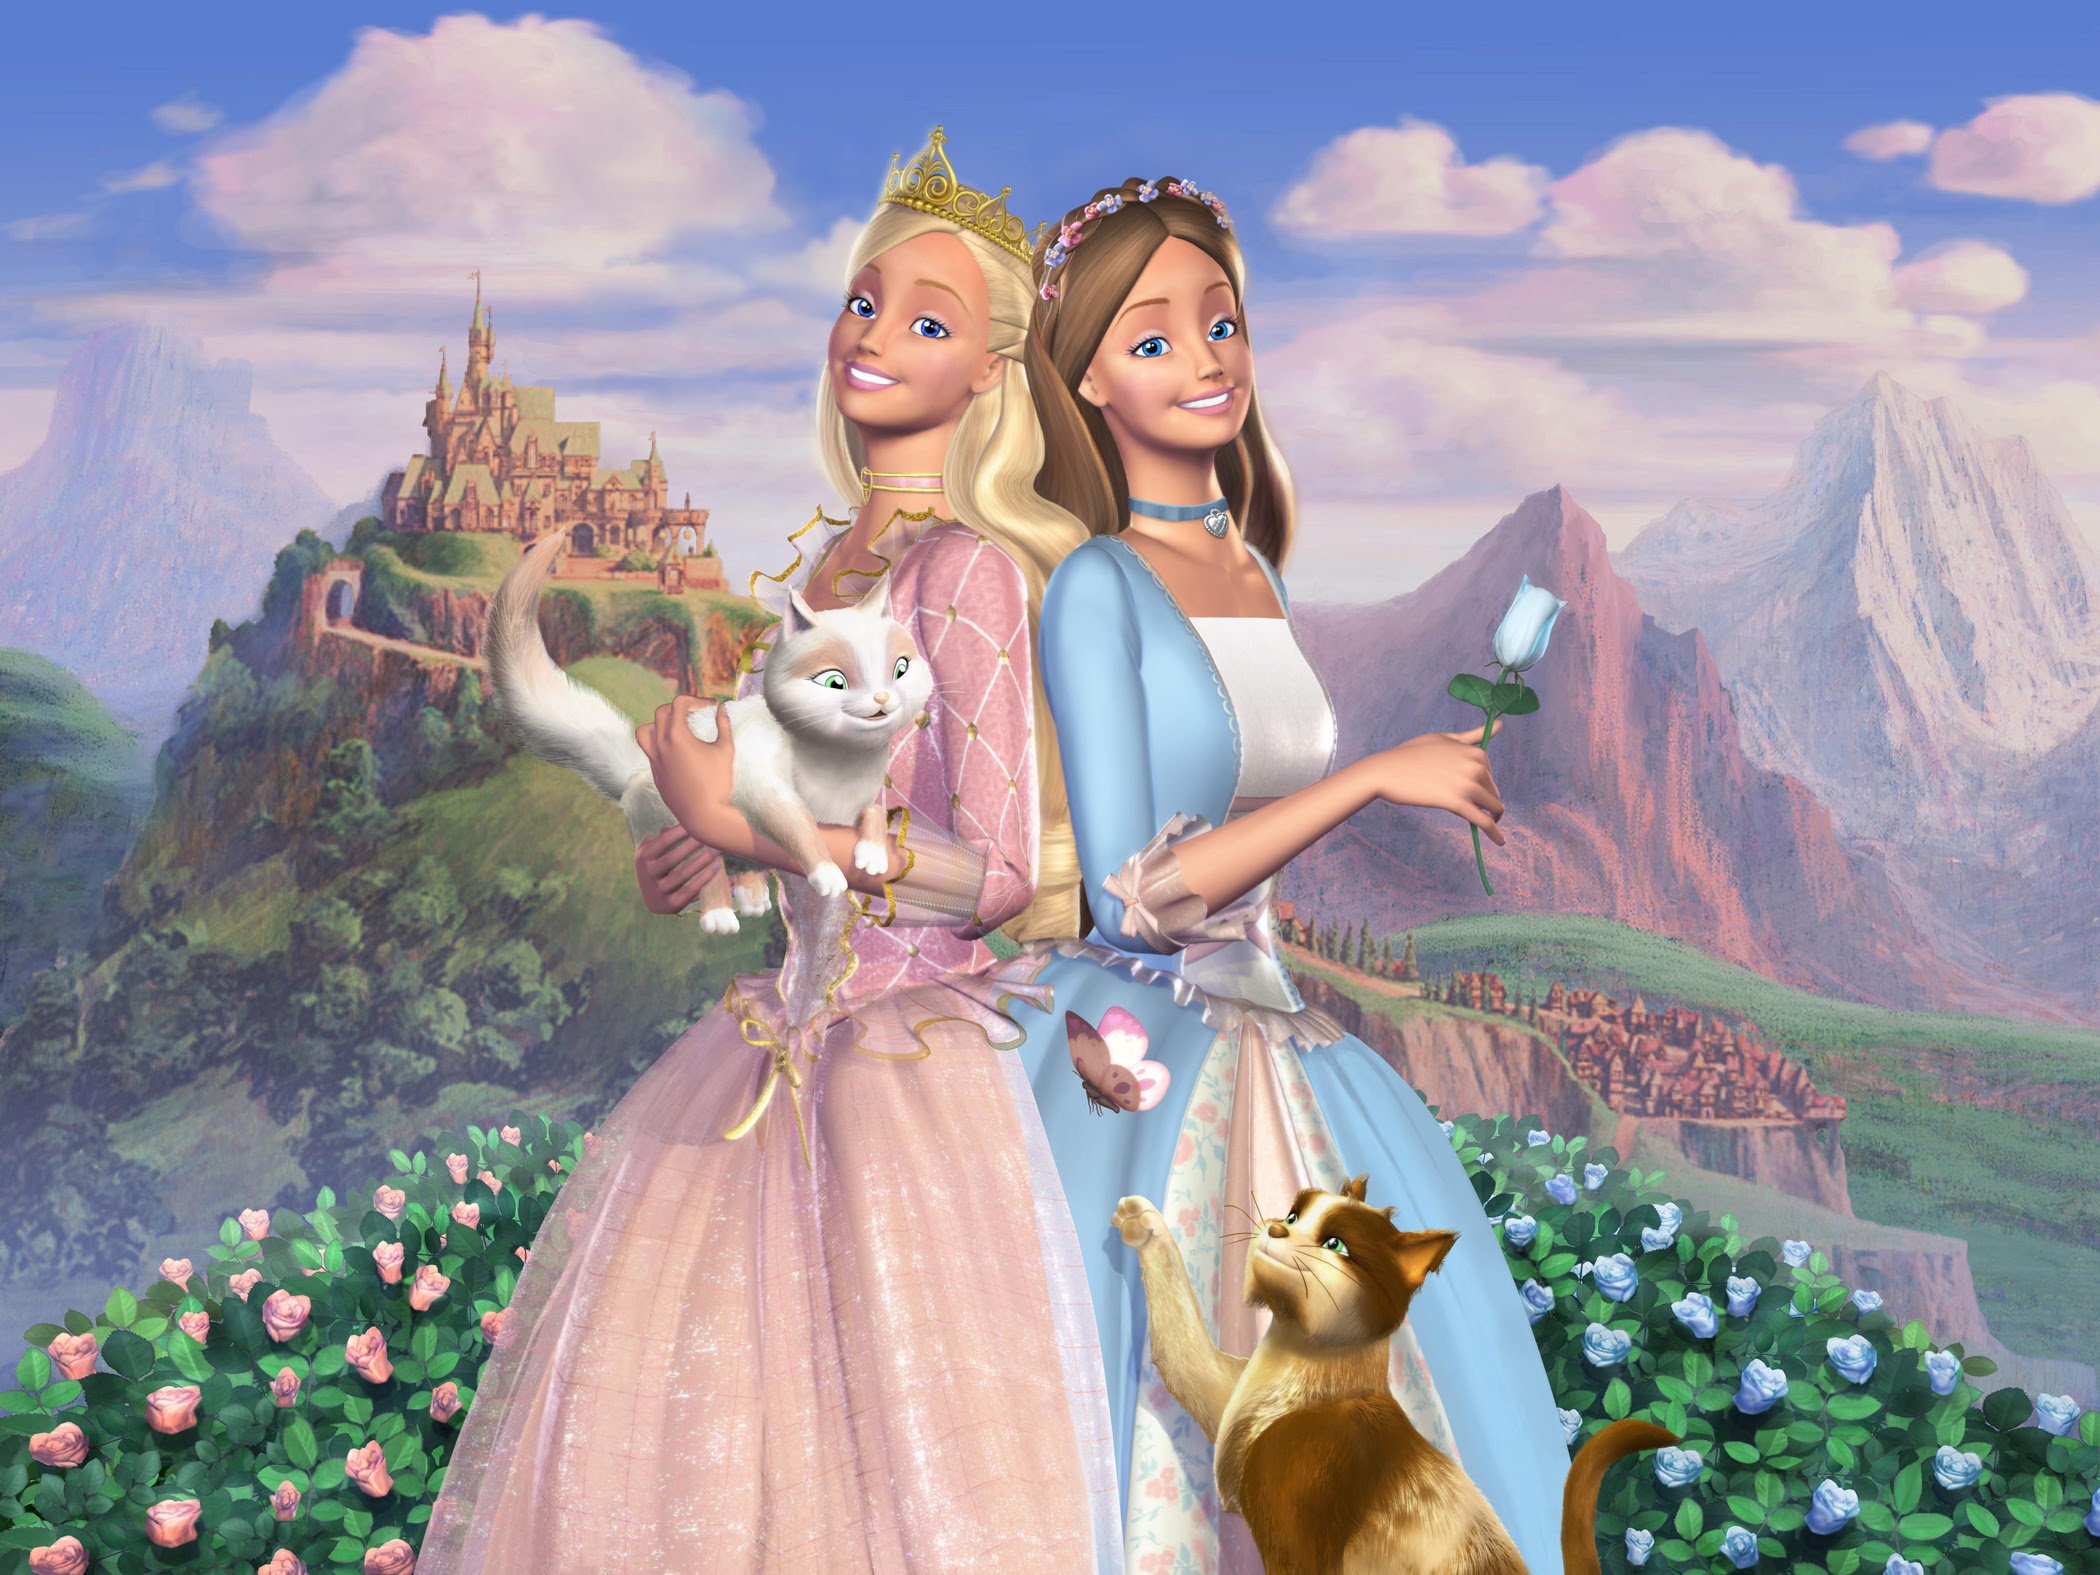 barbie the princess and the pauper